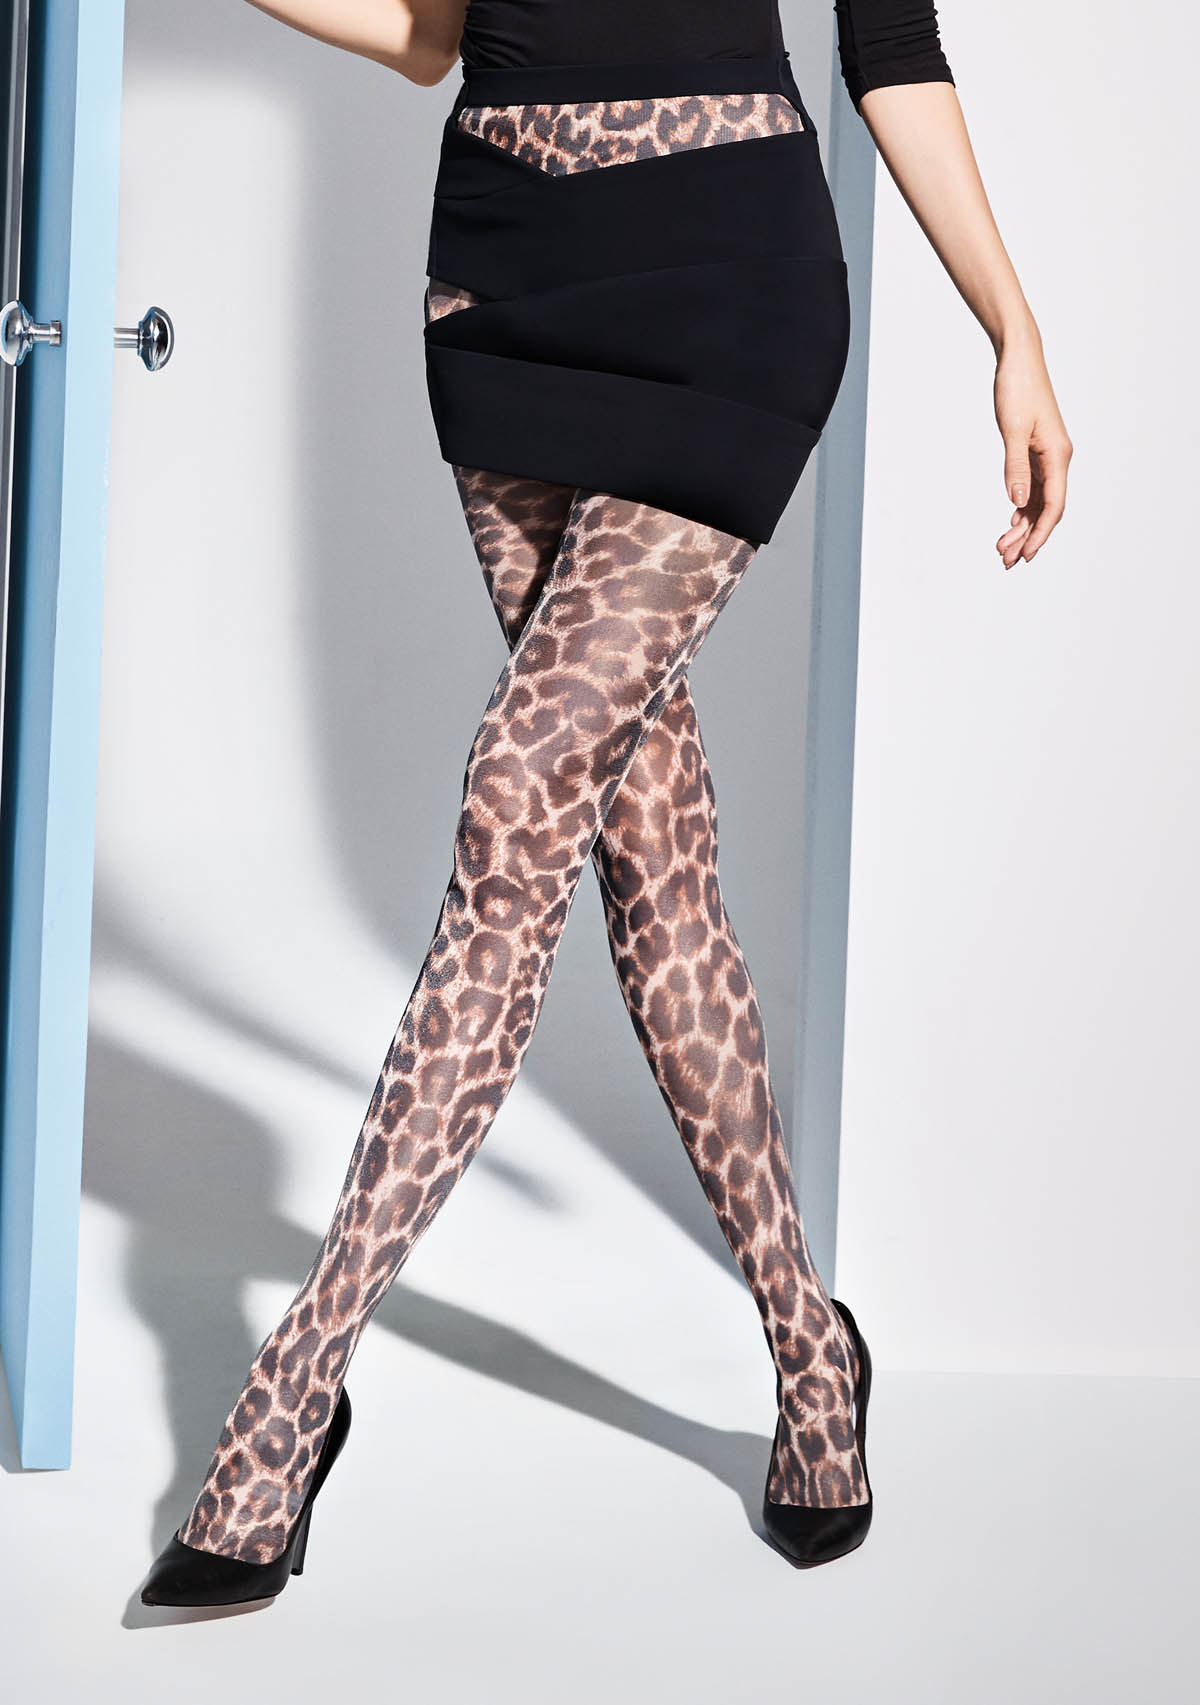 d1c194da7b51d NEW LEGWEAR COLLECTIONS - Calin Group S.A.